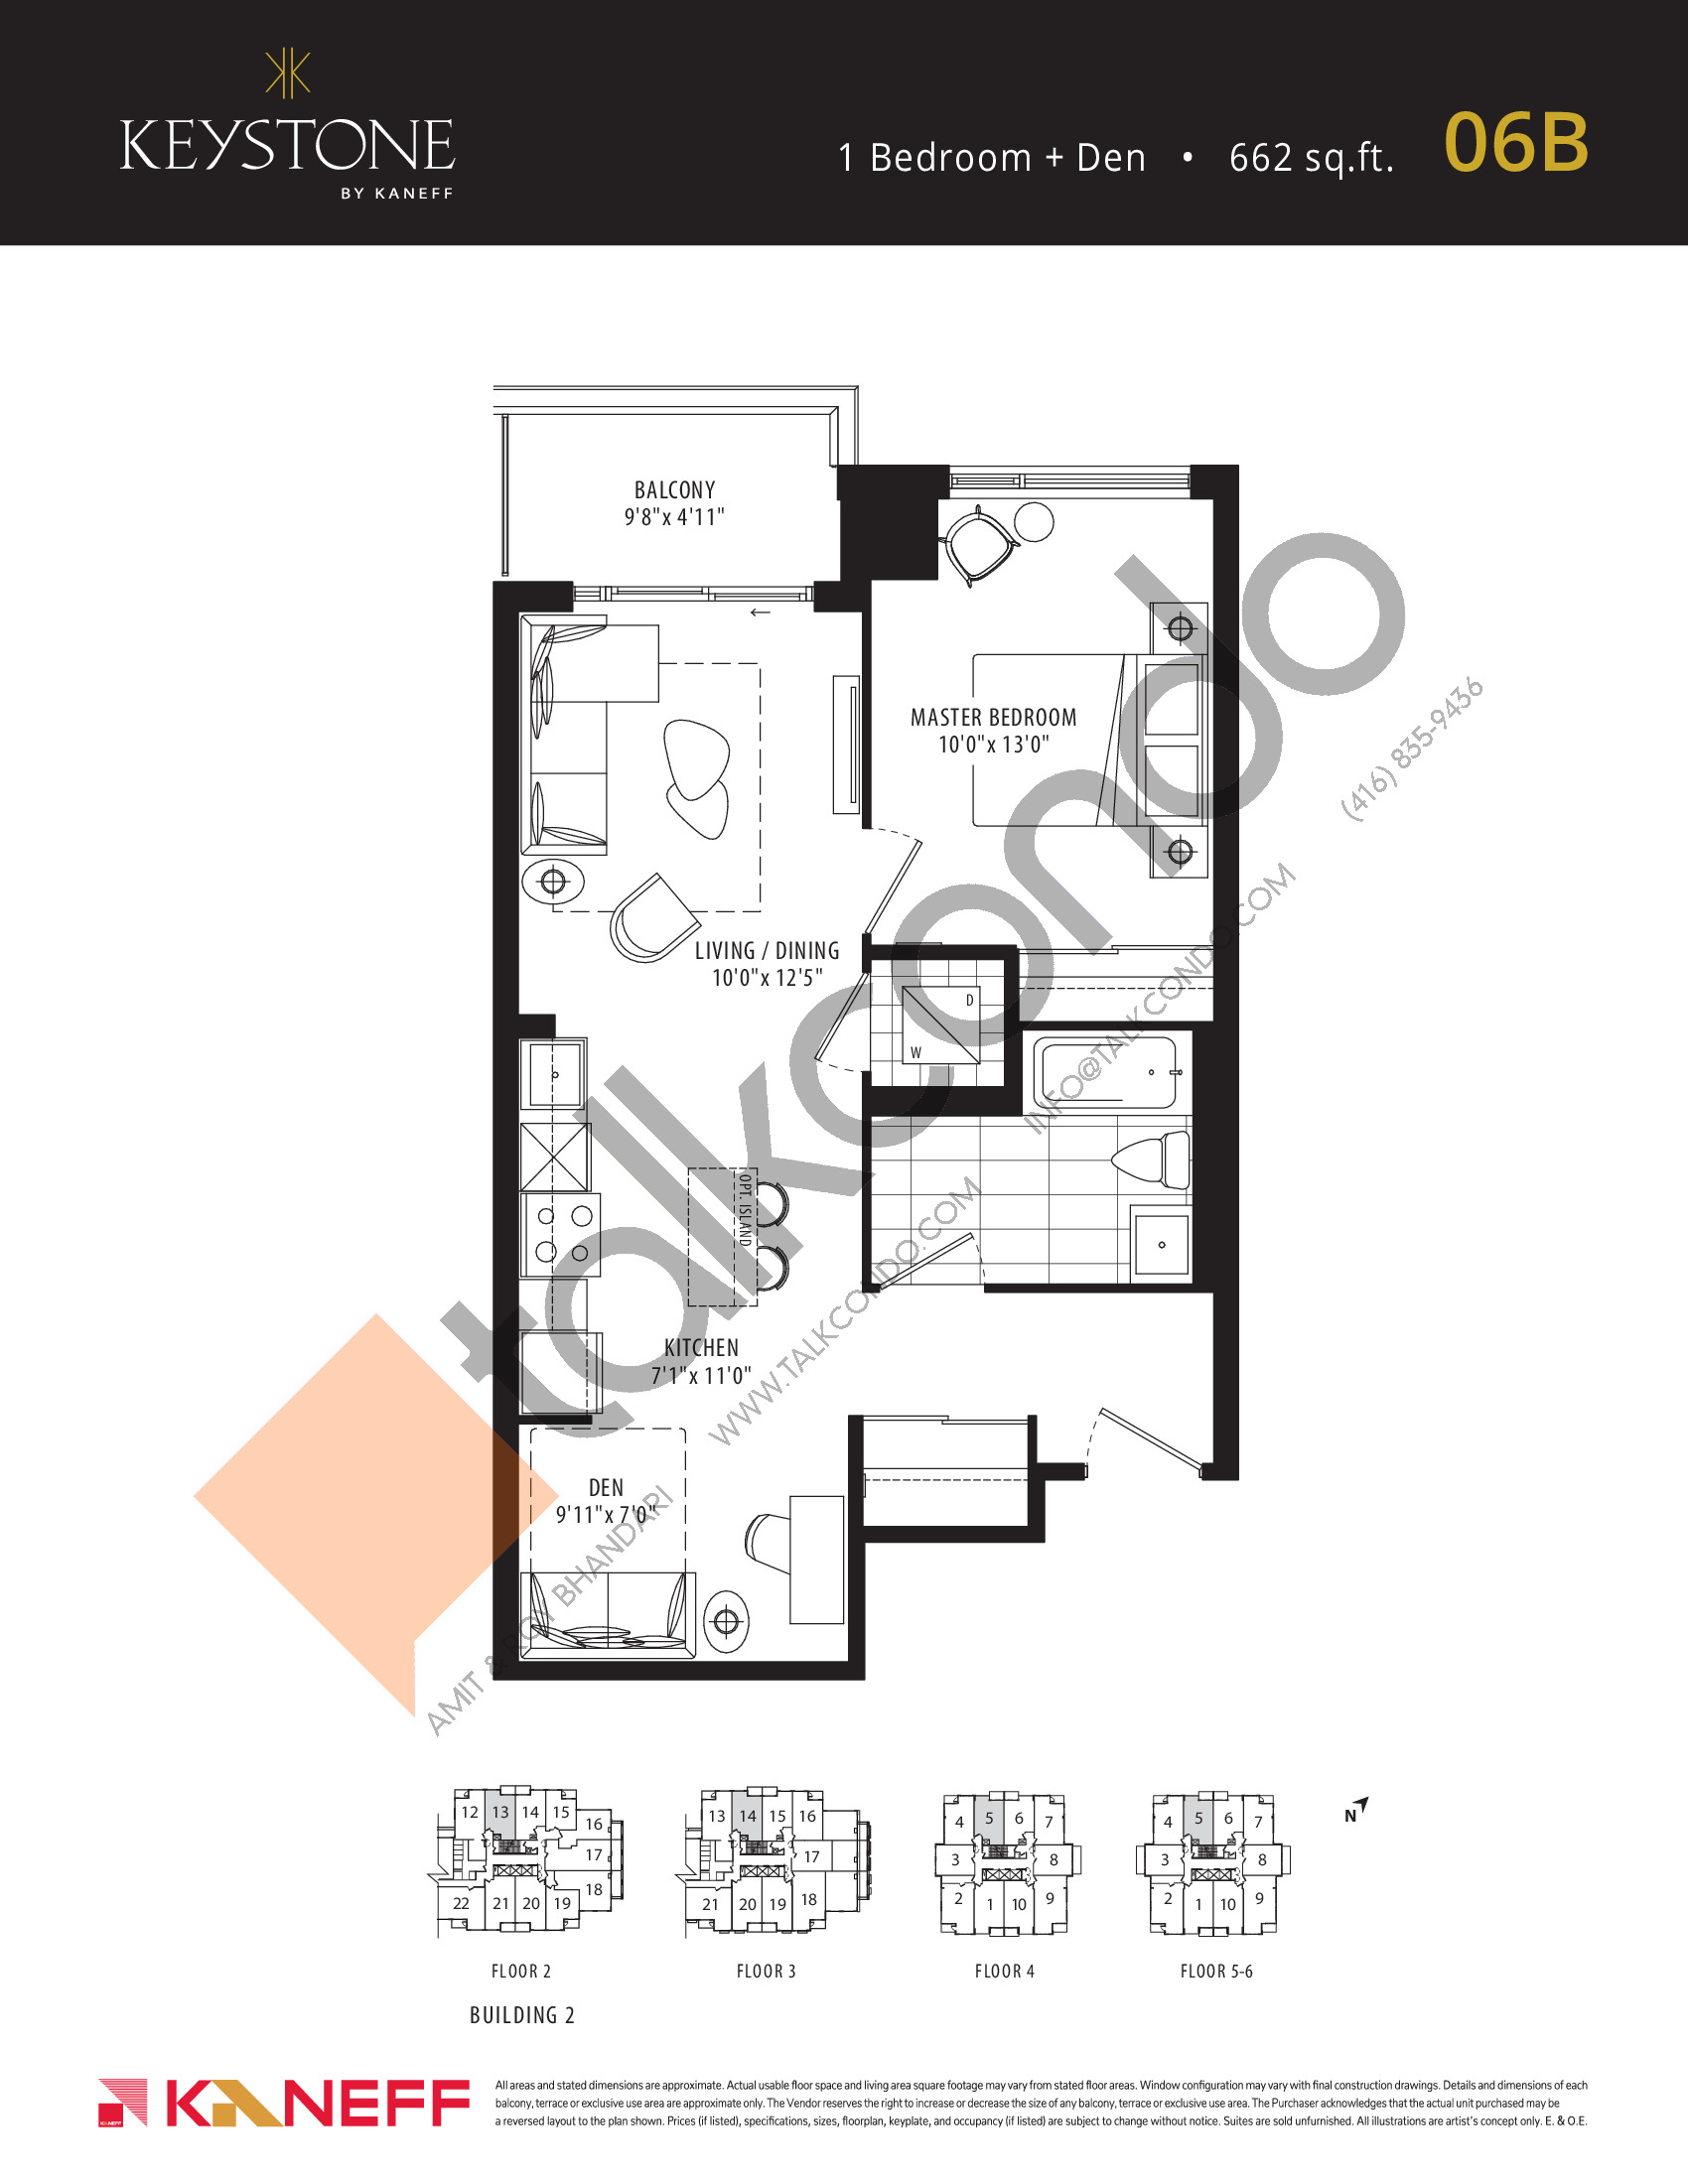 06B Floor Plan at Keystone Condos Phase 2 - 662 sq.ft